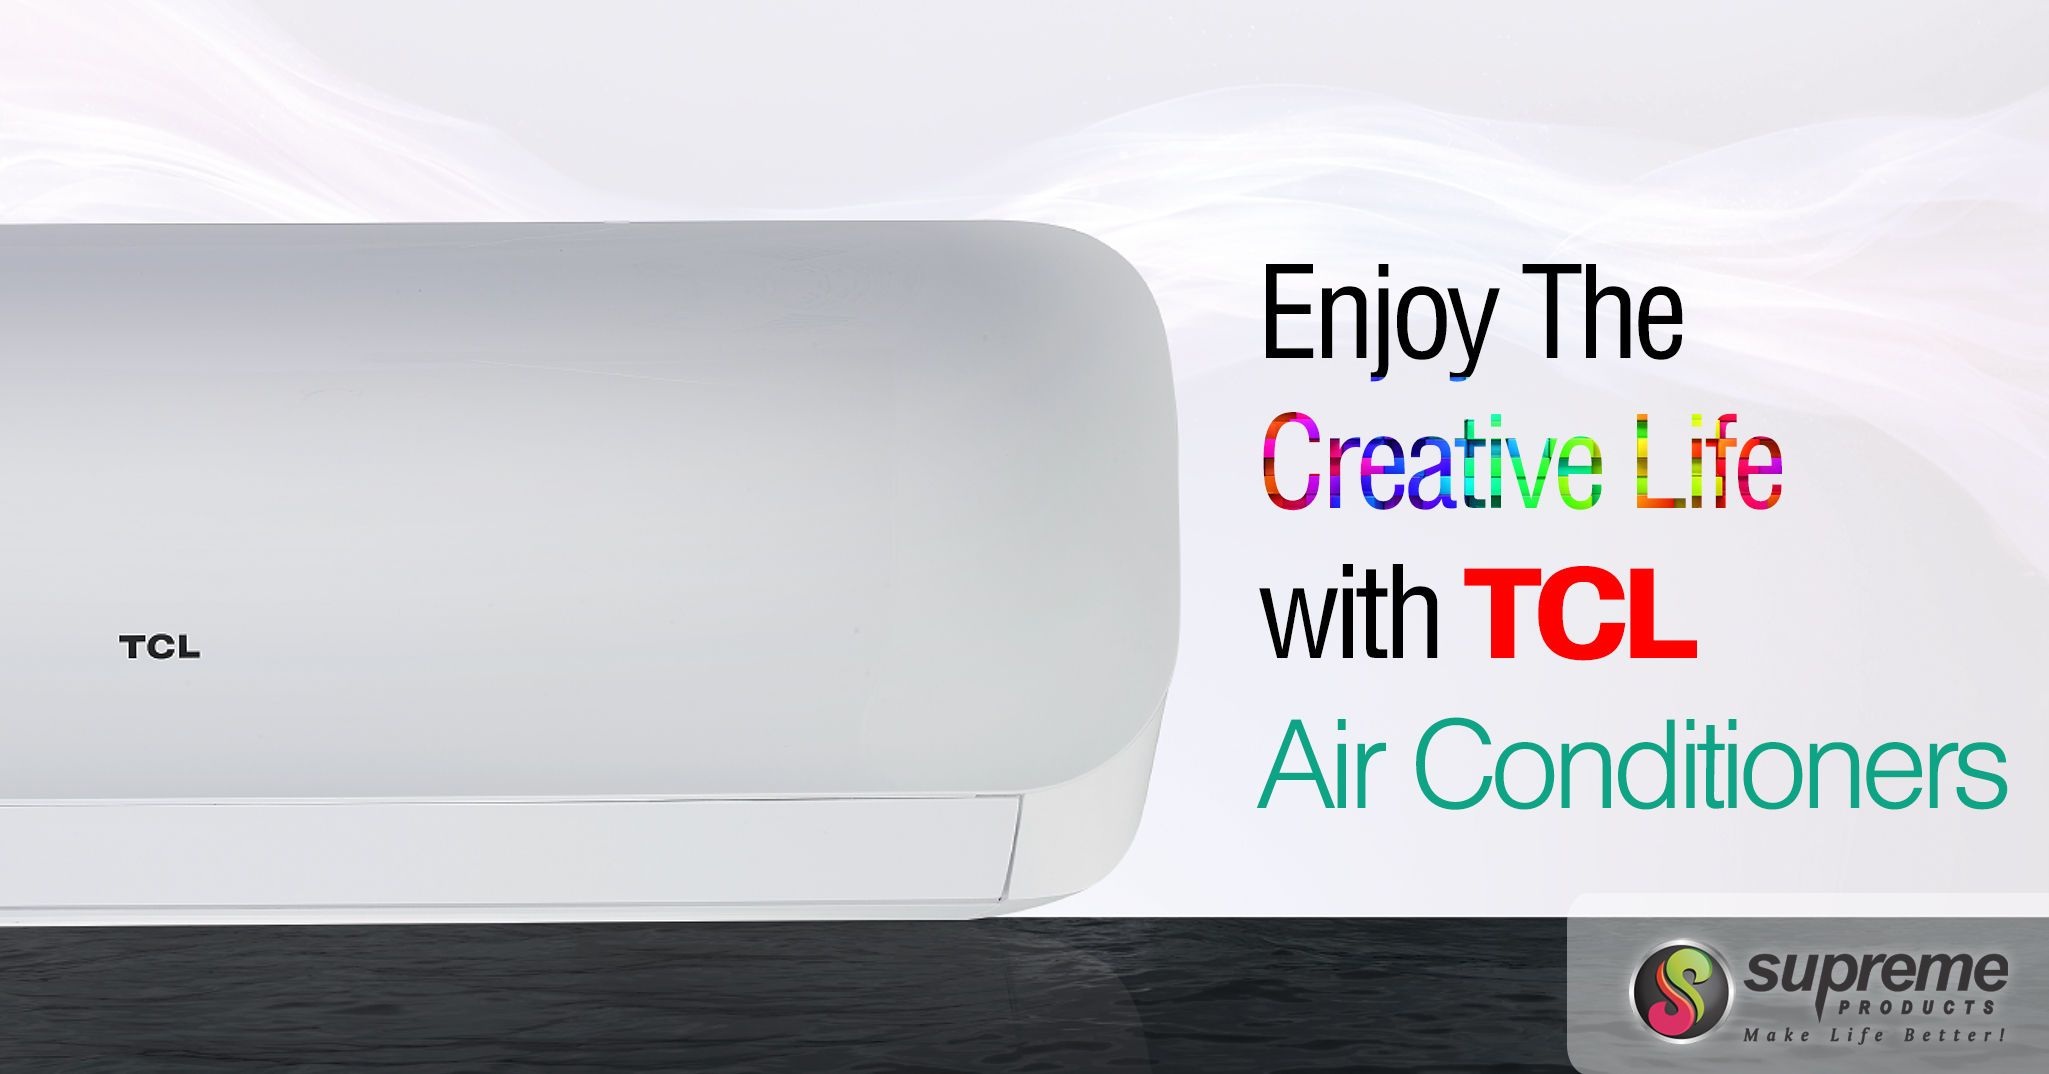 Enjoy the Creative Life with TCL Air Conditioners. Tcl